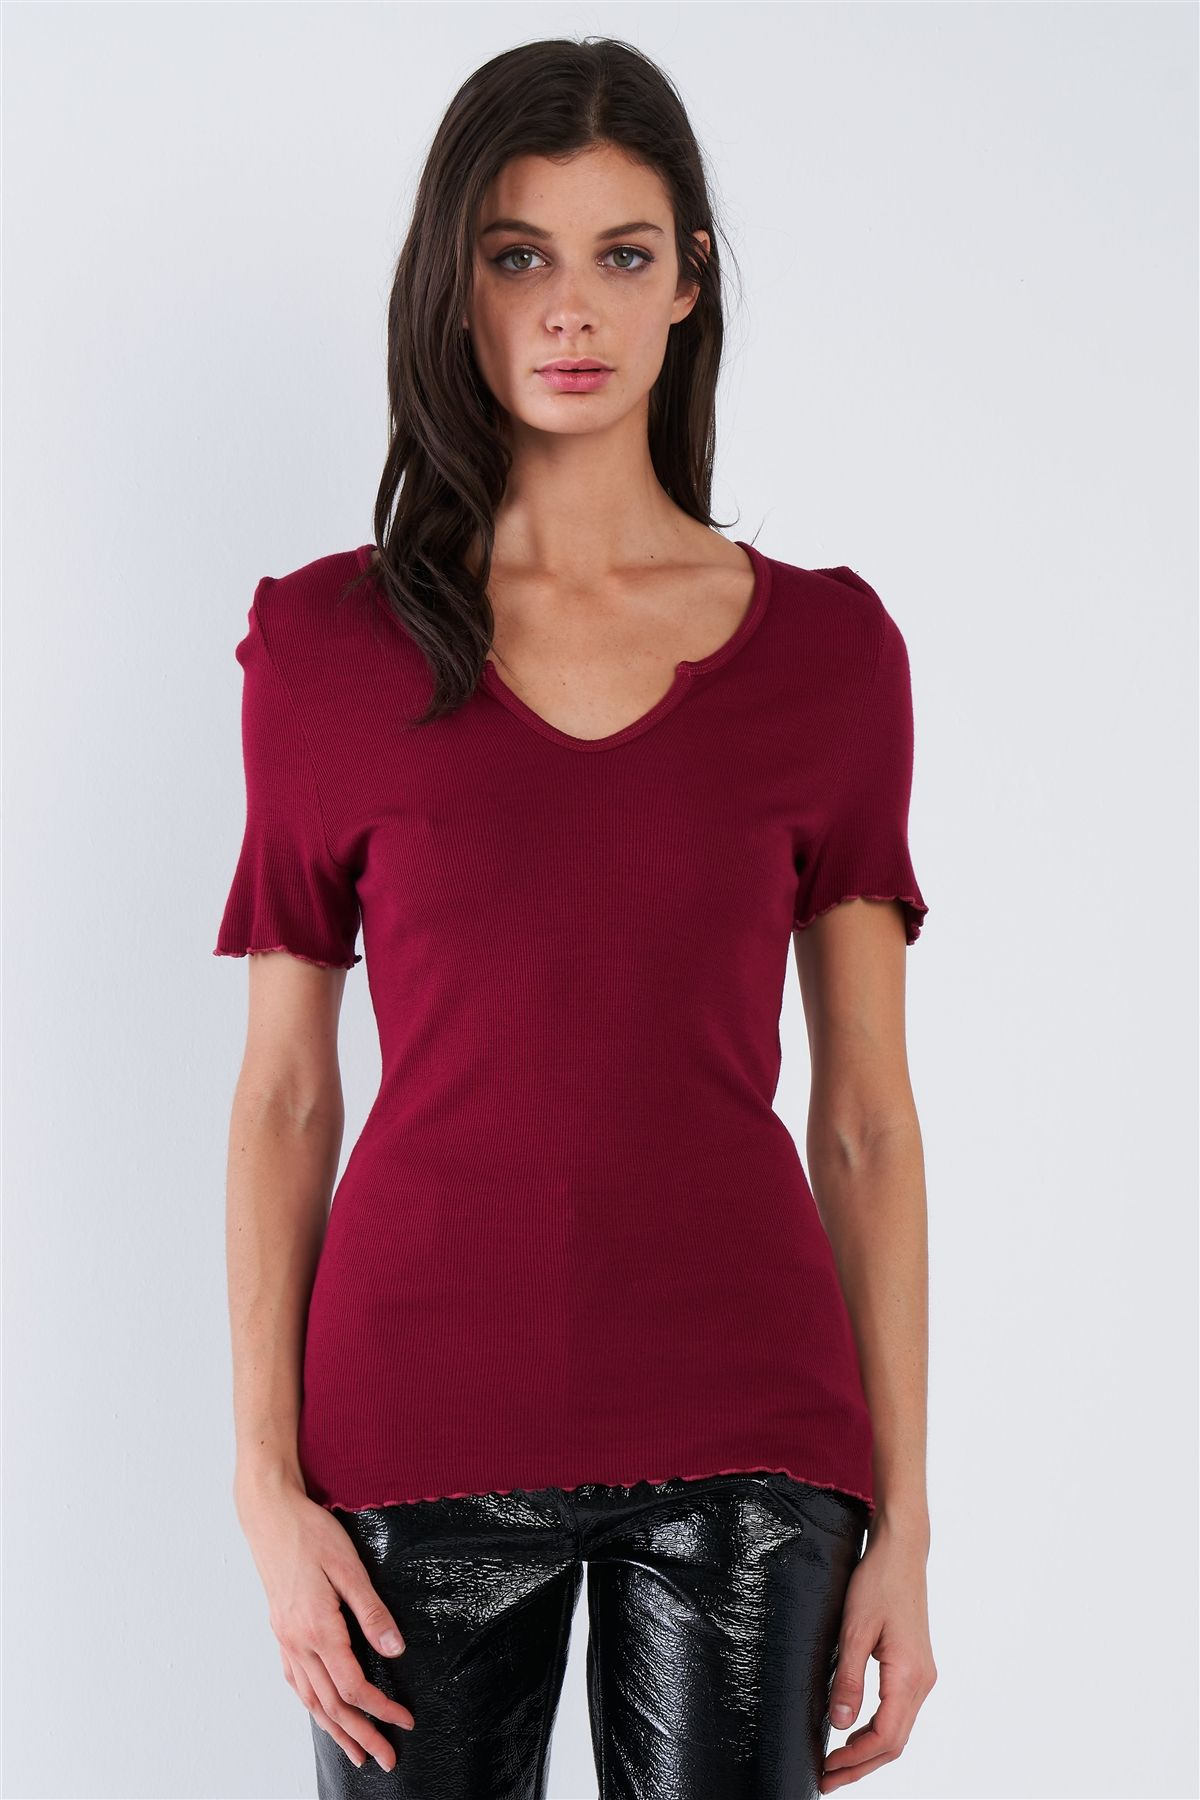 Cherry Red Ribbed V-neck Top - J NILLY